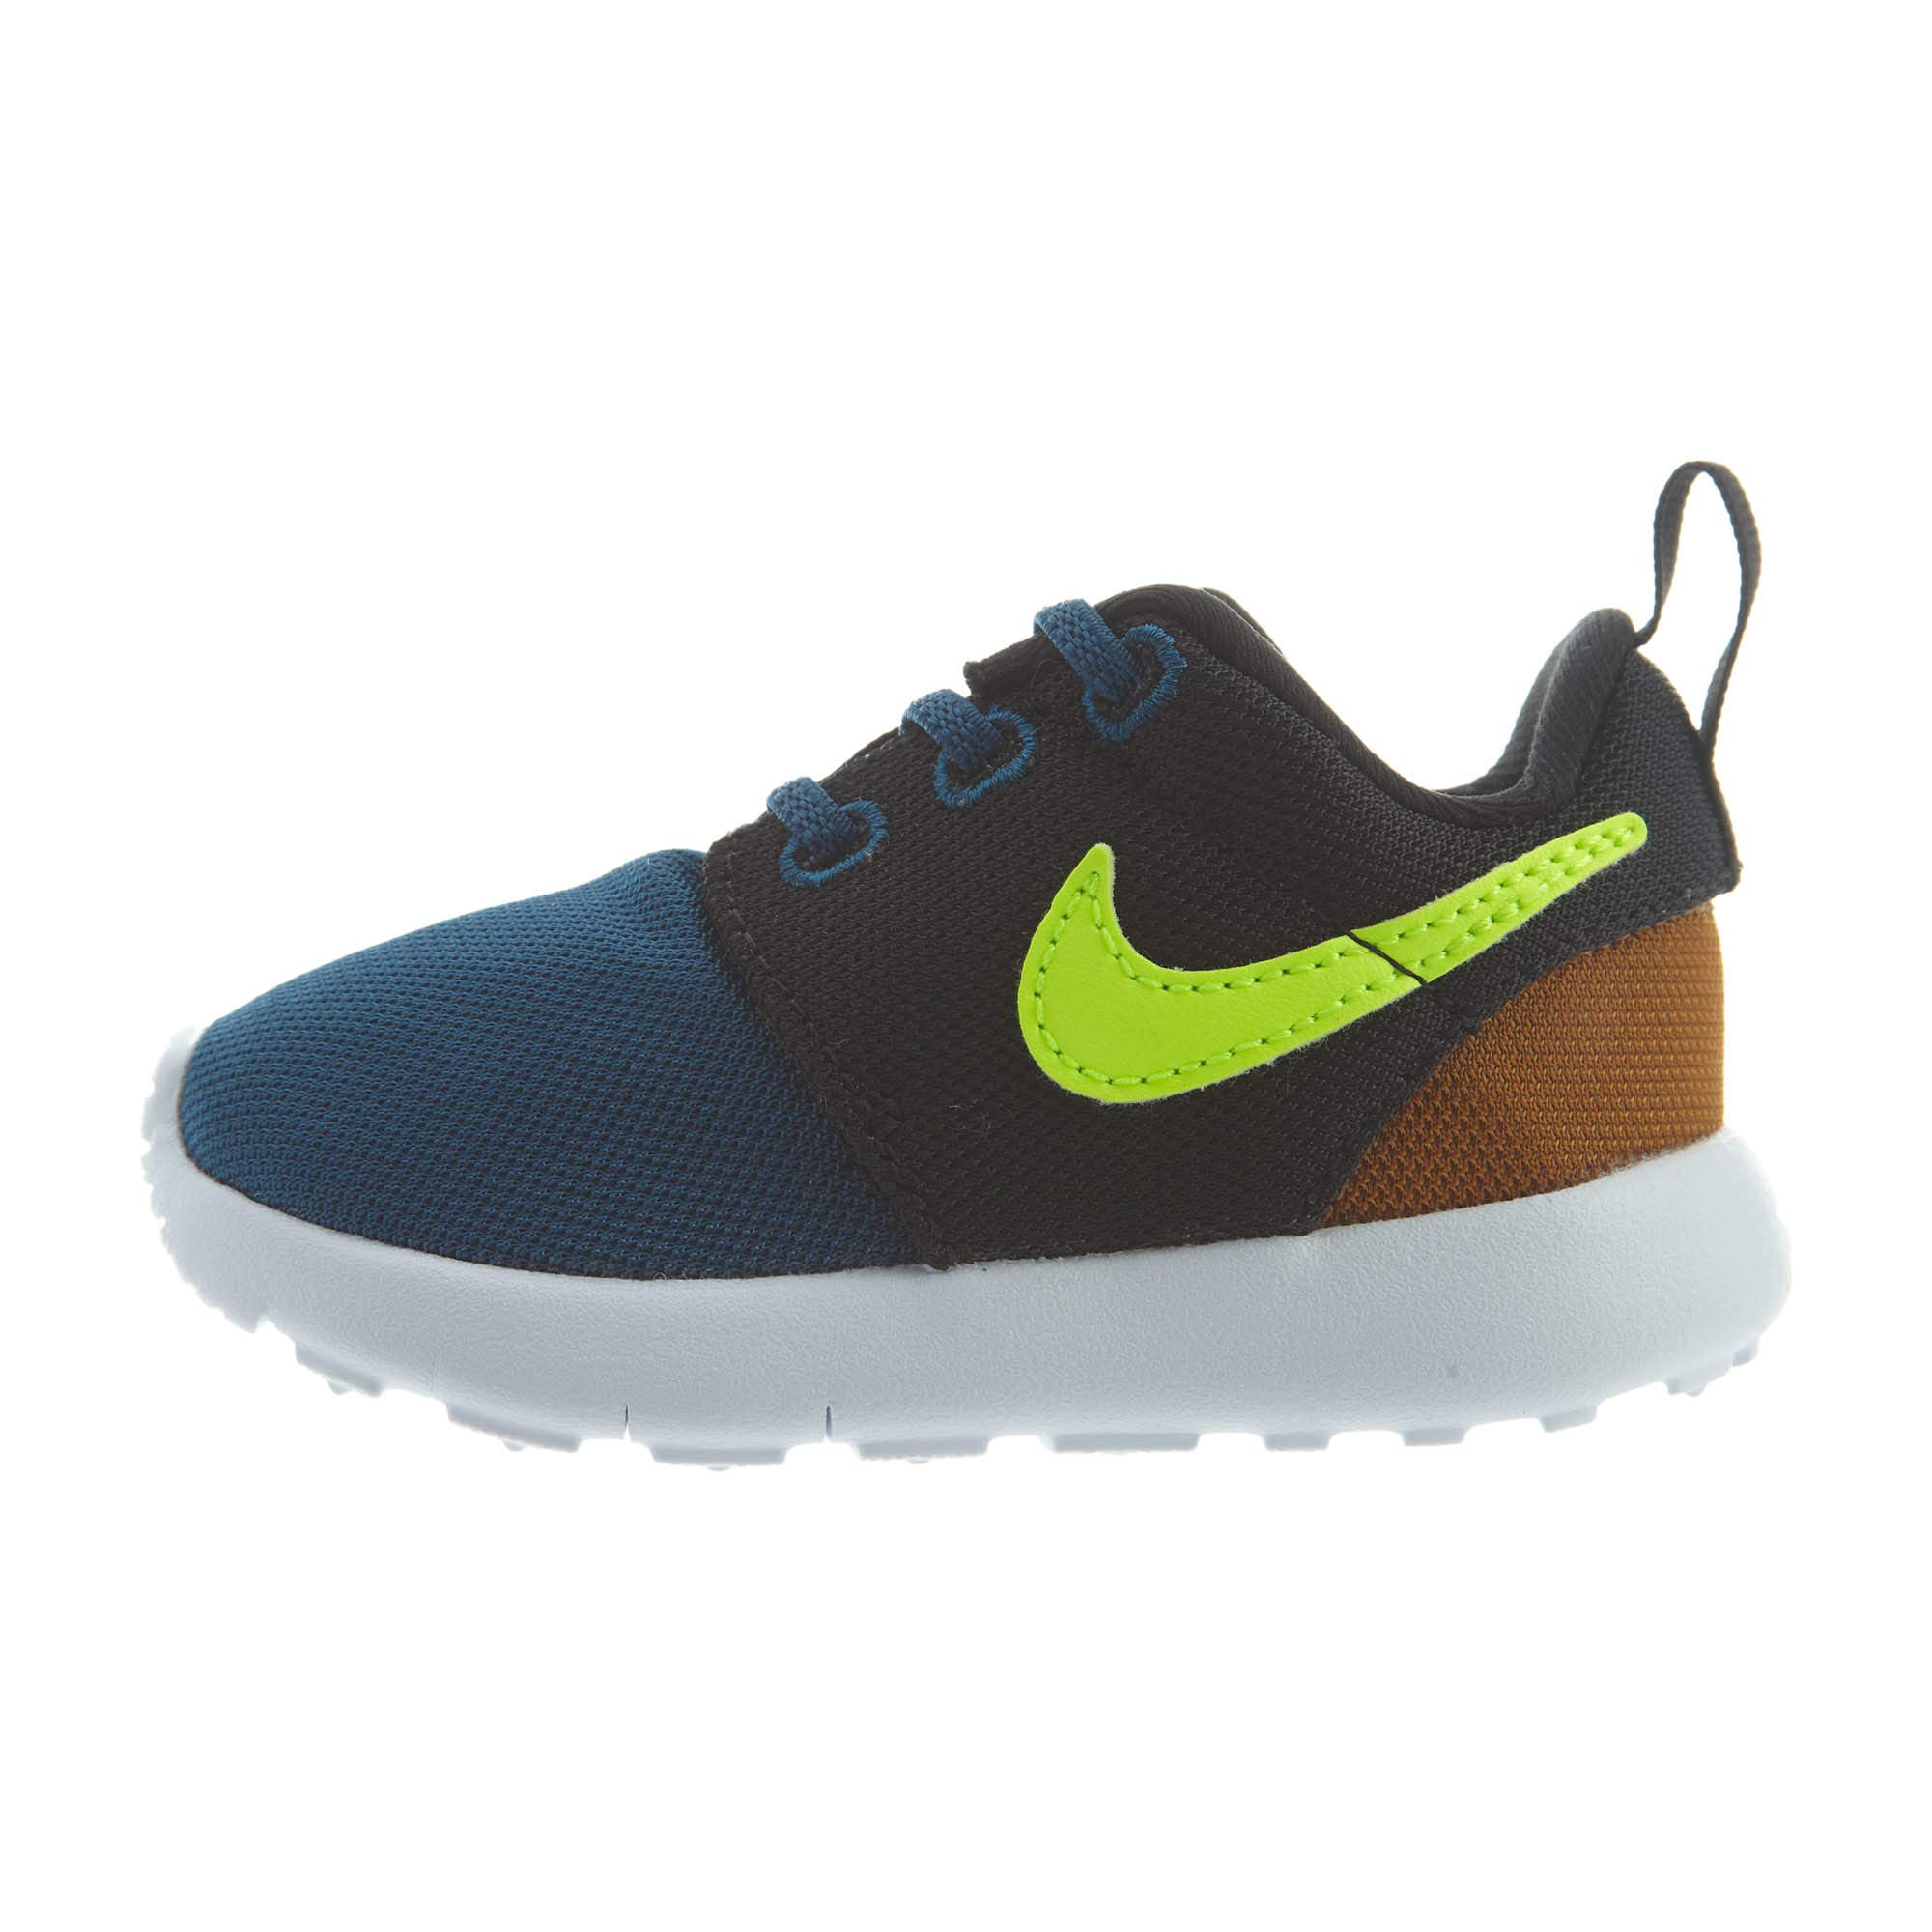 low priced 0decf 4bfd2 Galleon - NIKE Roshe One (TDV) Toddler 749430-427 Size 7